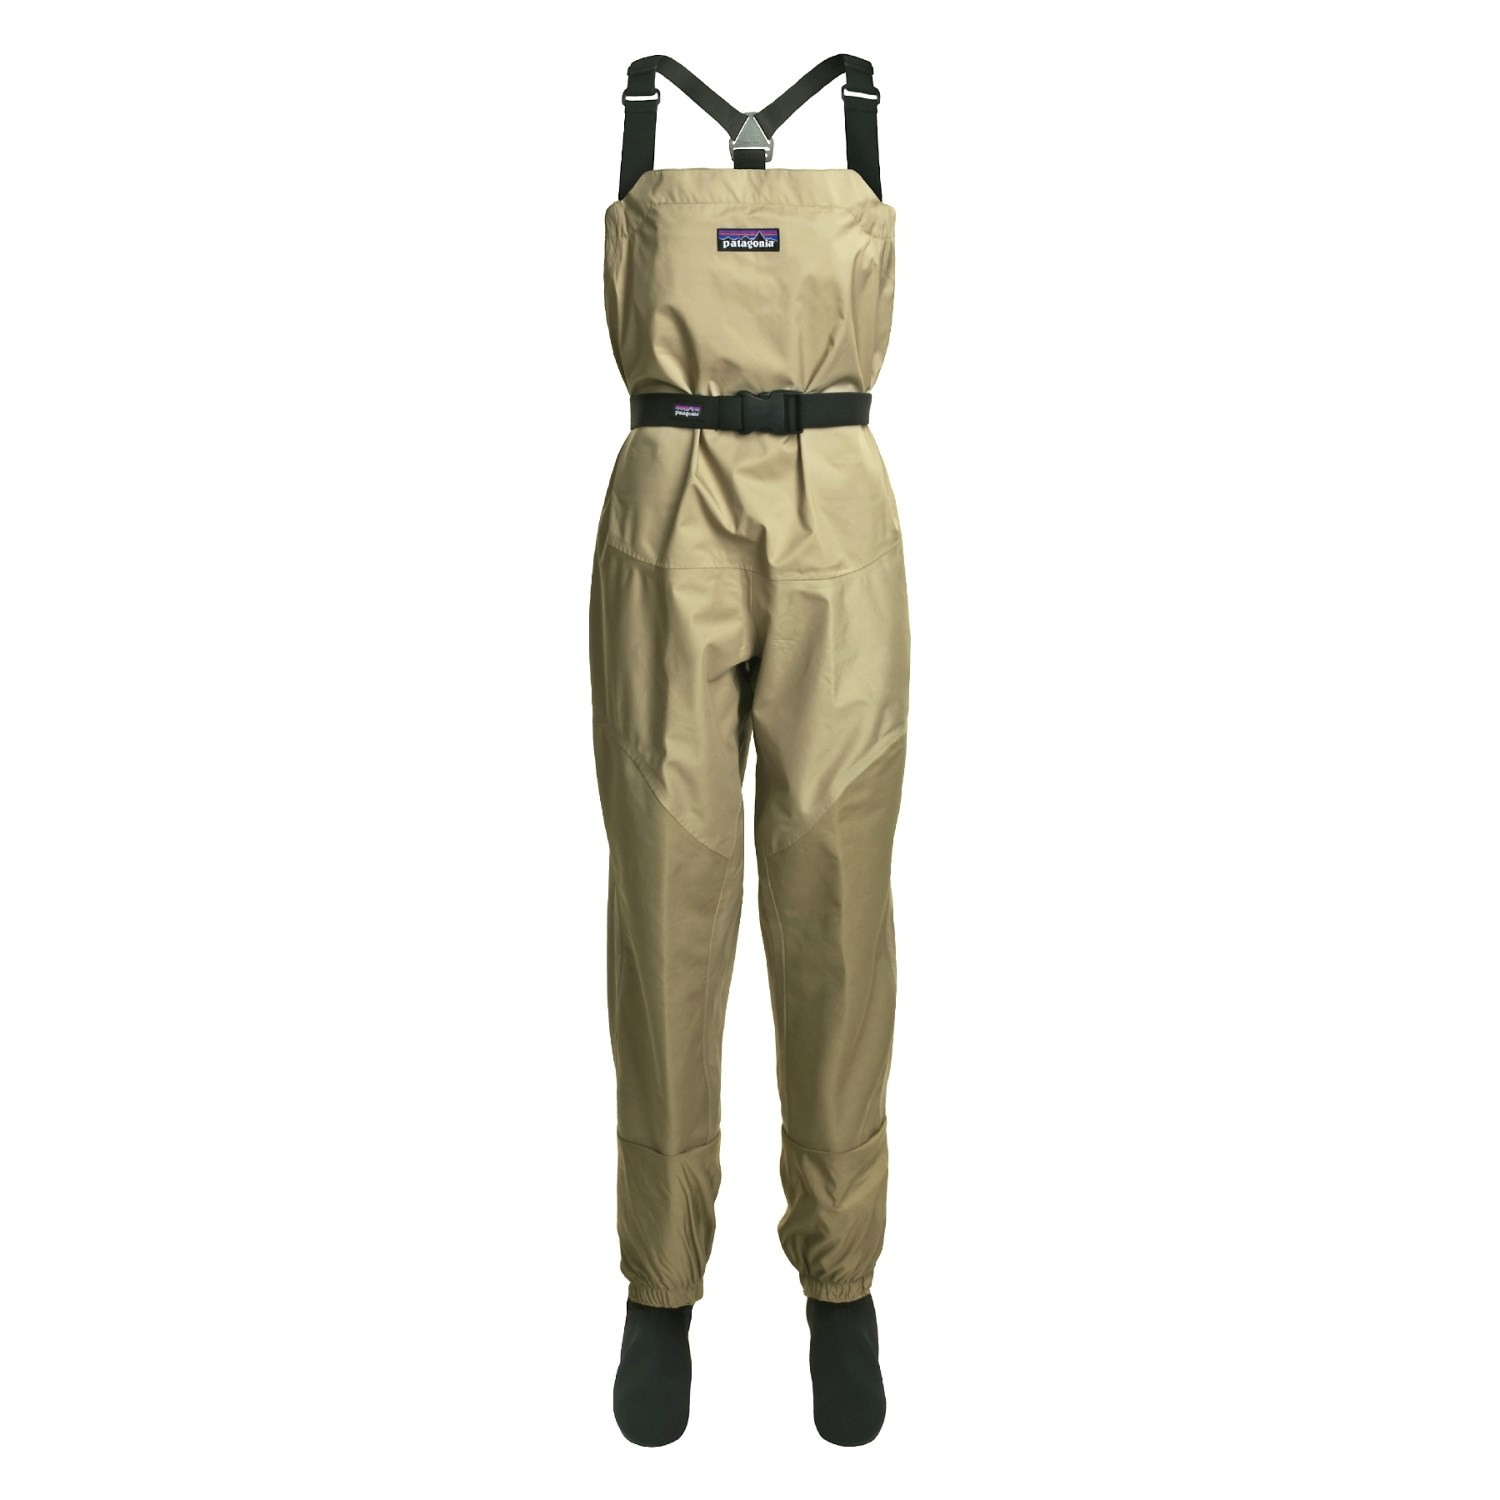 Patagonia watermaster ii fly fishing waders for women 1899k for Fly fishing waders